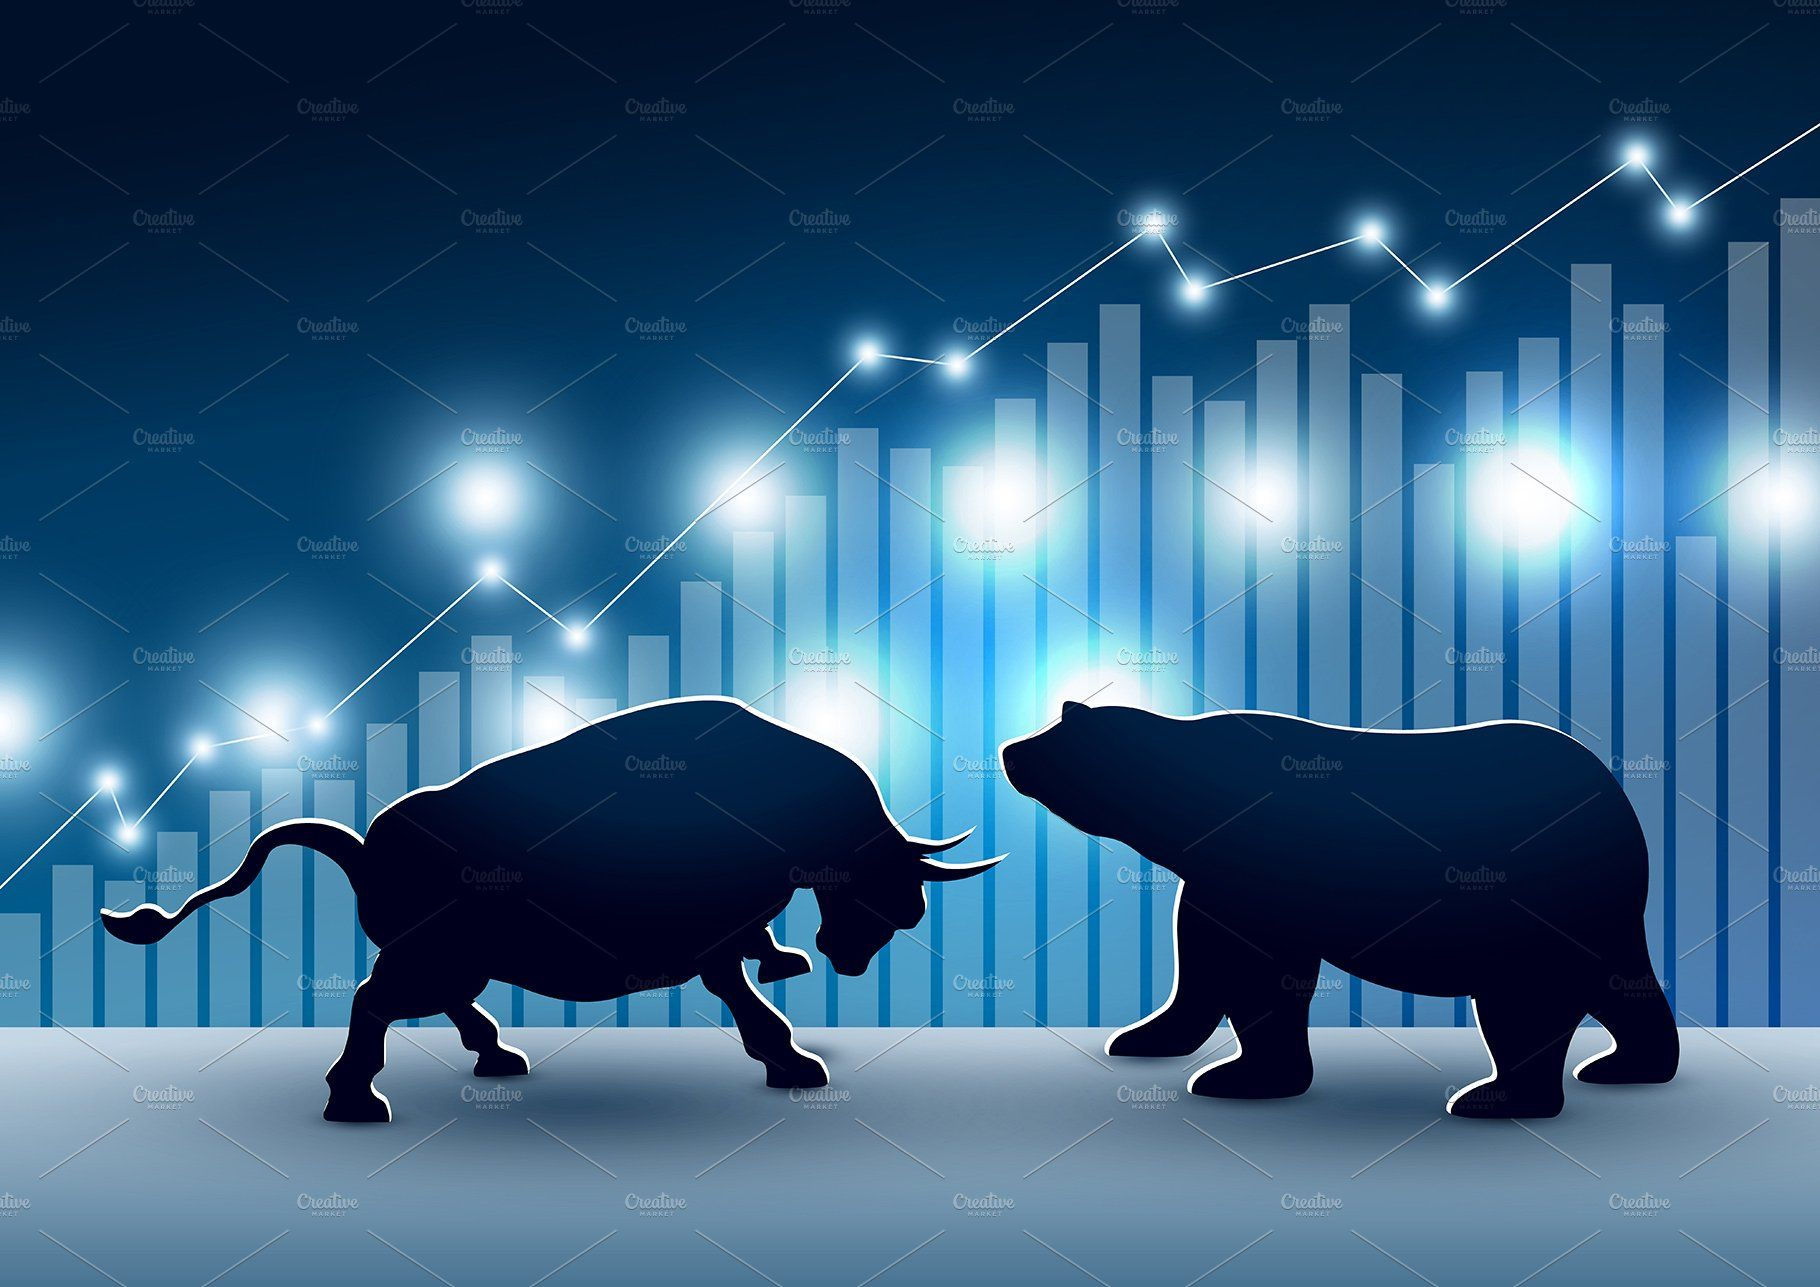 A detailed guide on a brokerage account